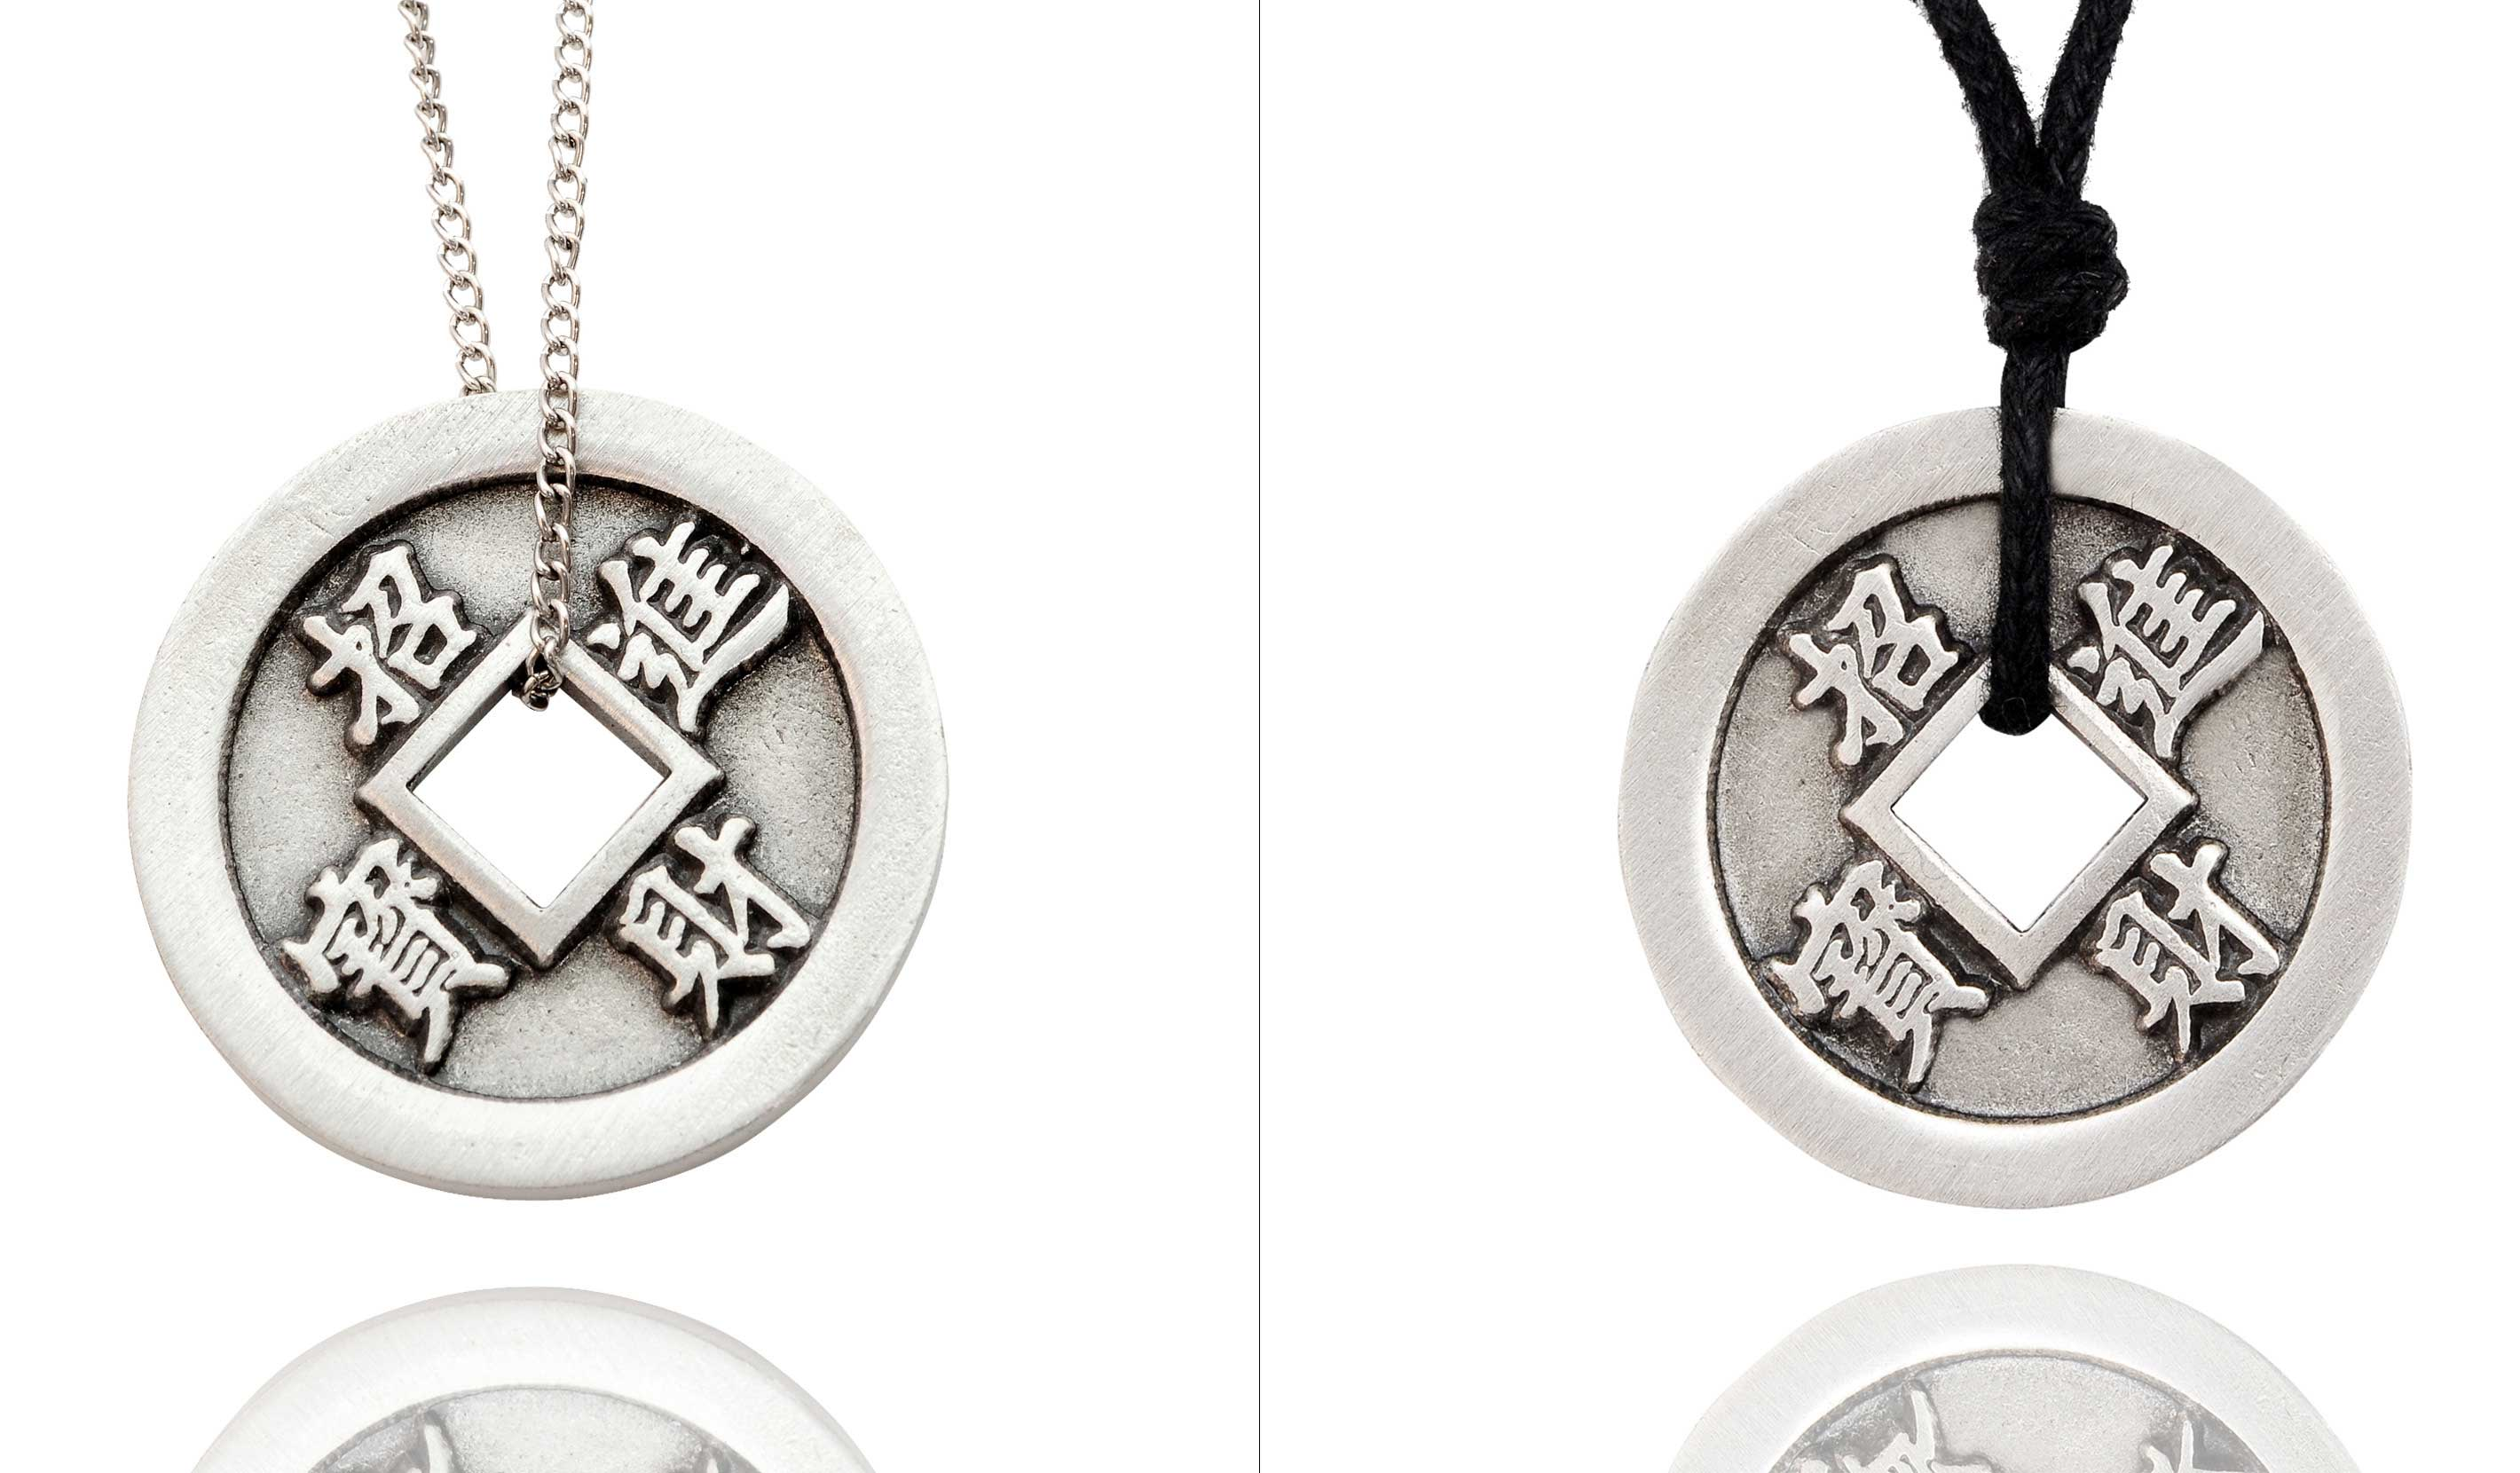 New chinese zodiac i ching silver pewter charm necklace pendant new chinese zodiac i ching silver pewter charm aloadofball Image collections